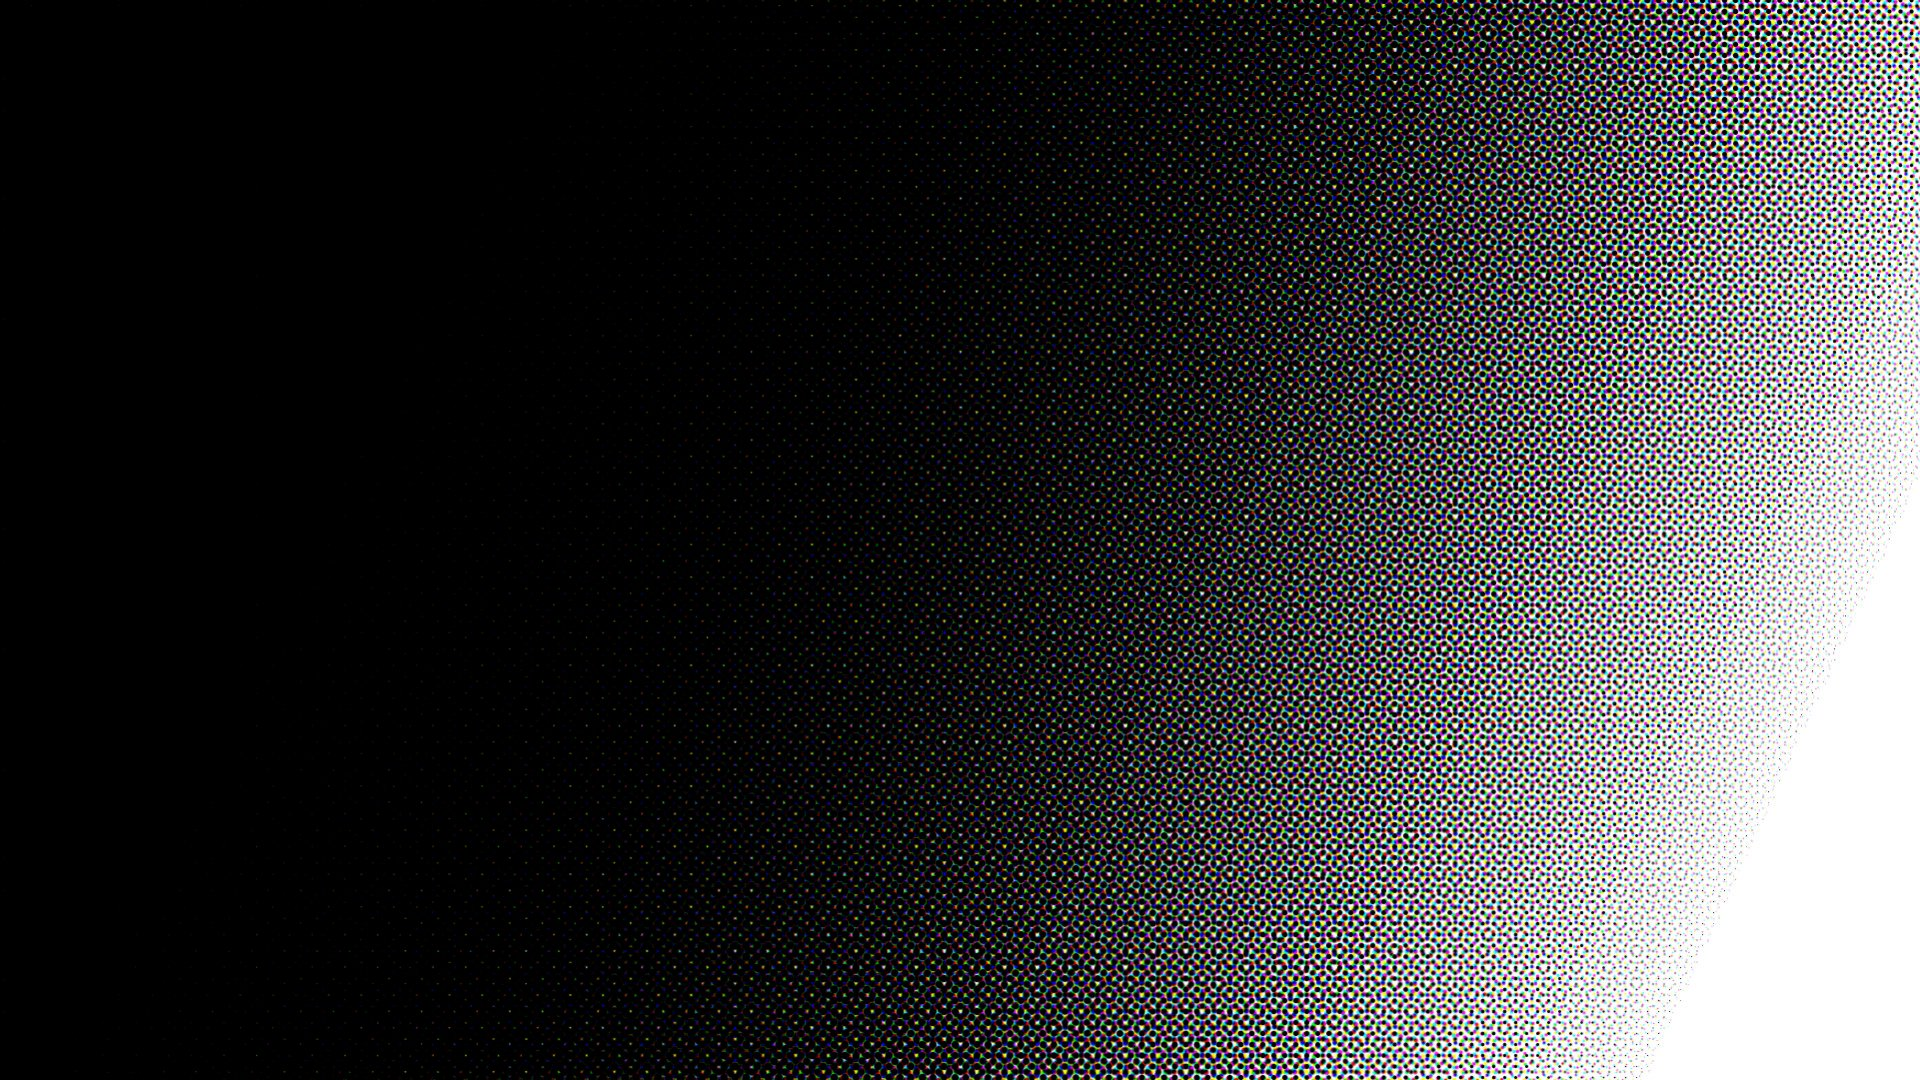 Black Minimalistic White Patterns Textures Simple